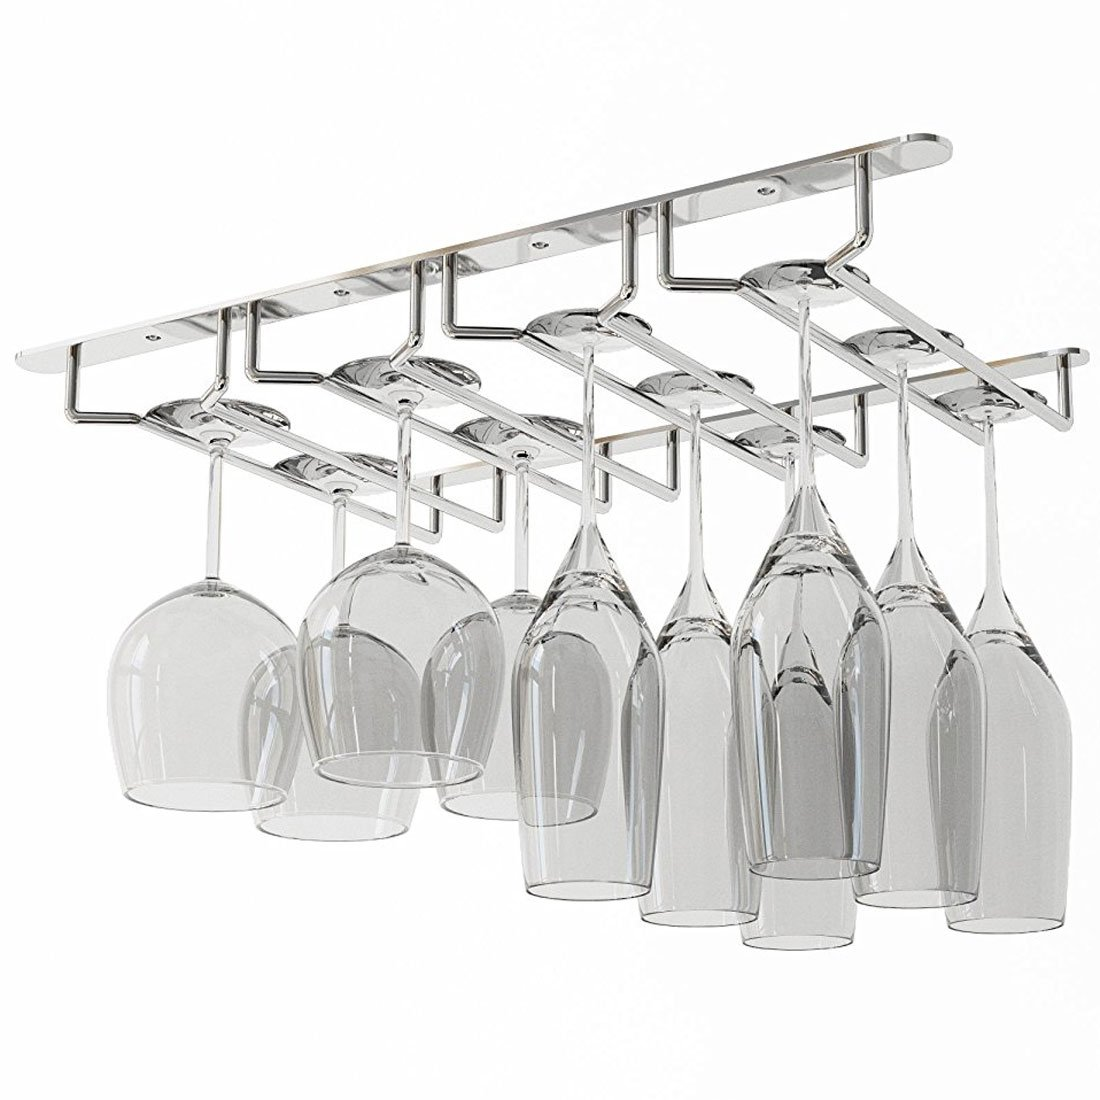 Amazoncom Wallniture Under Cabinet Stemware Glass Storage Rack